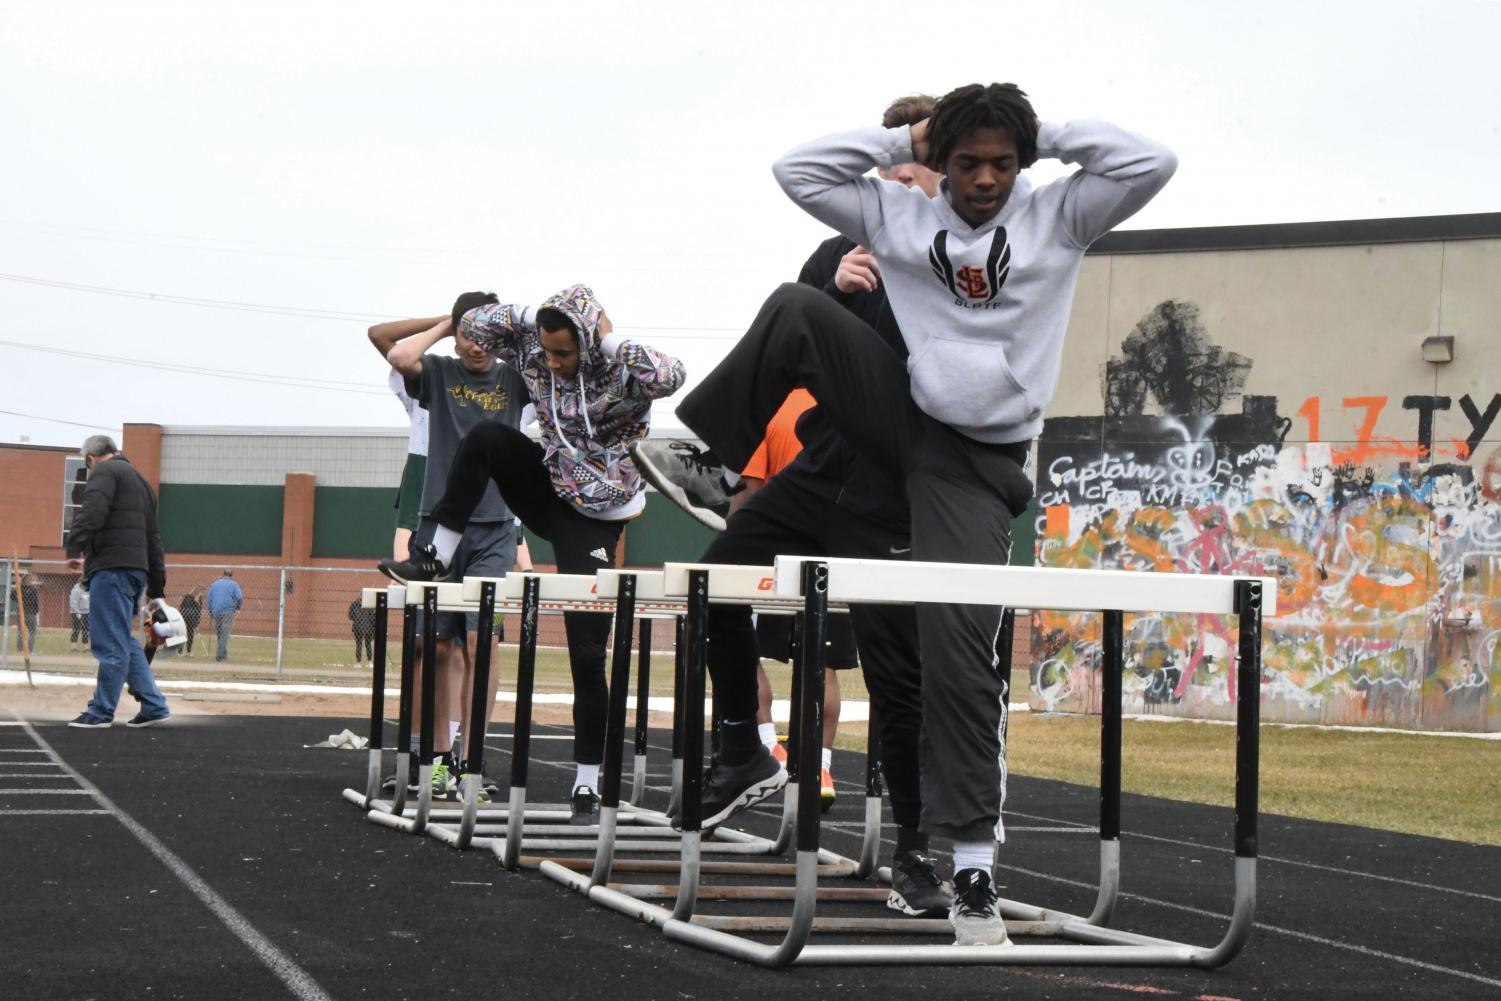 Senior Donovan Hill practices with his fellow track teammates by walking over hurdles before running. The recent snowstorm April 11 caused the team to again be indoors.